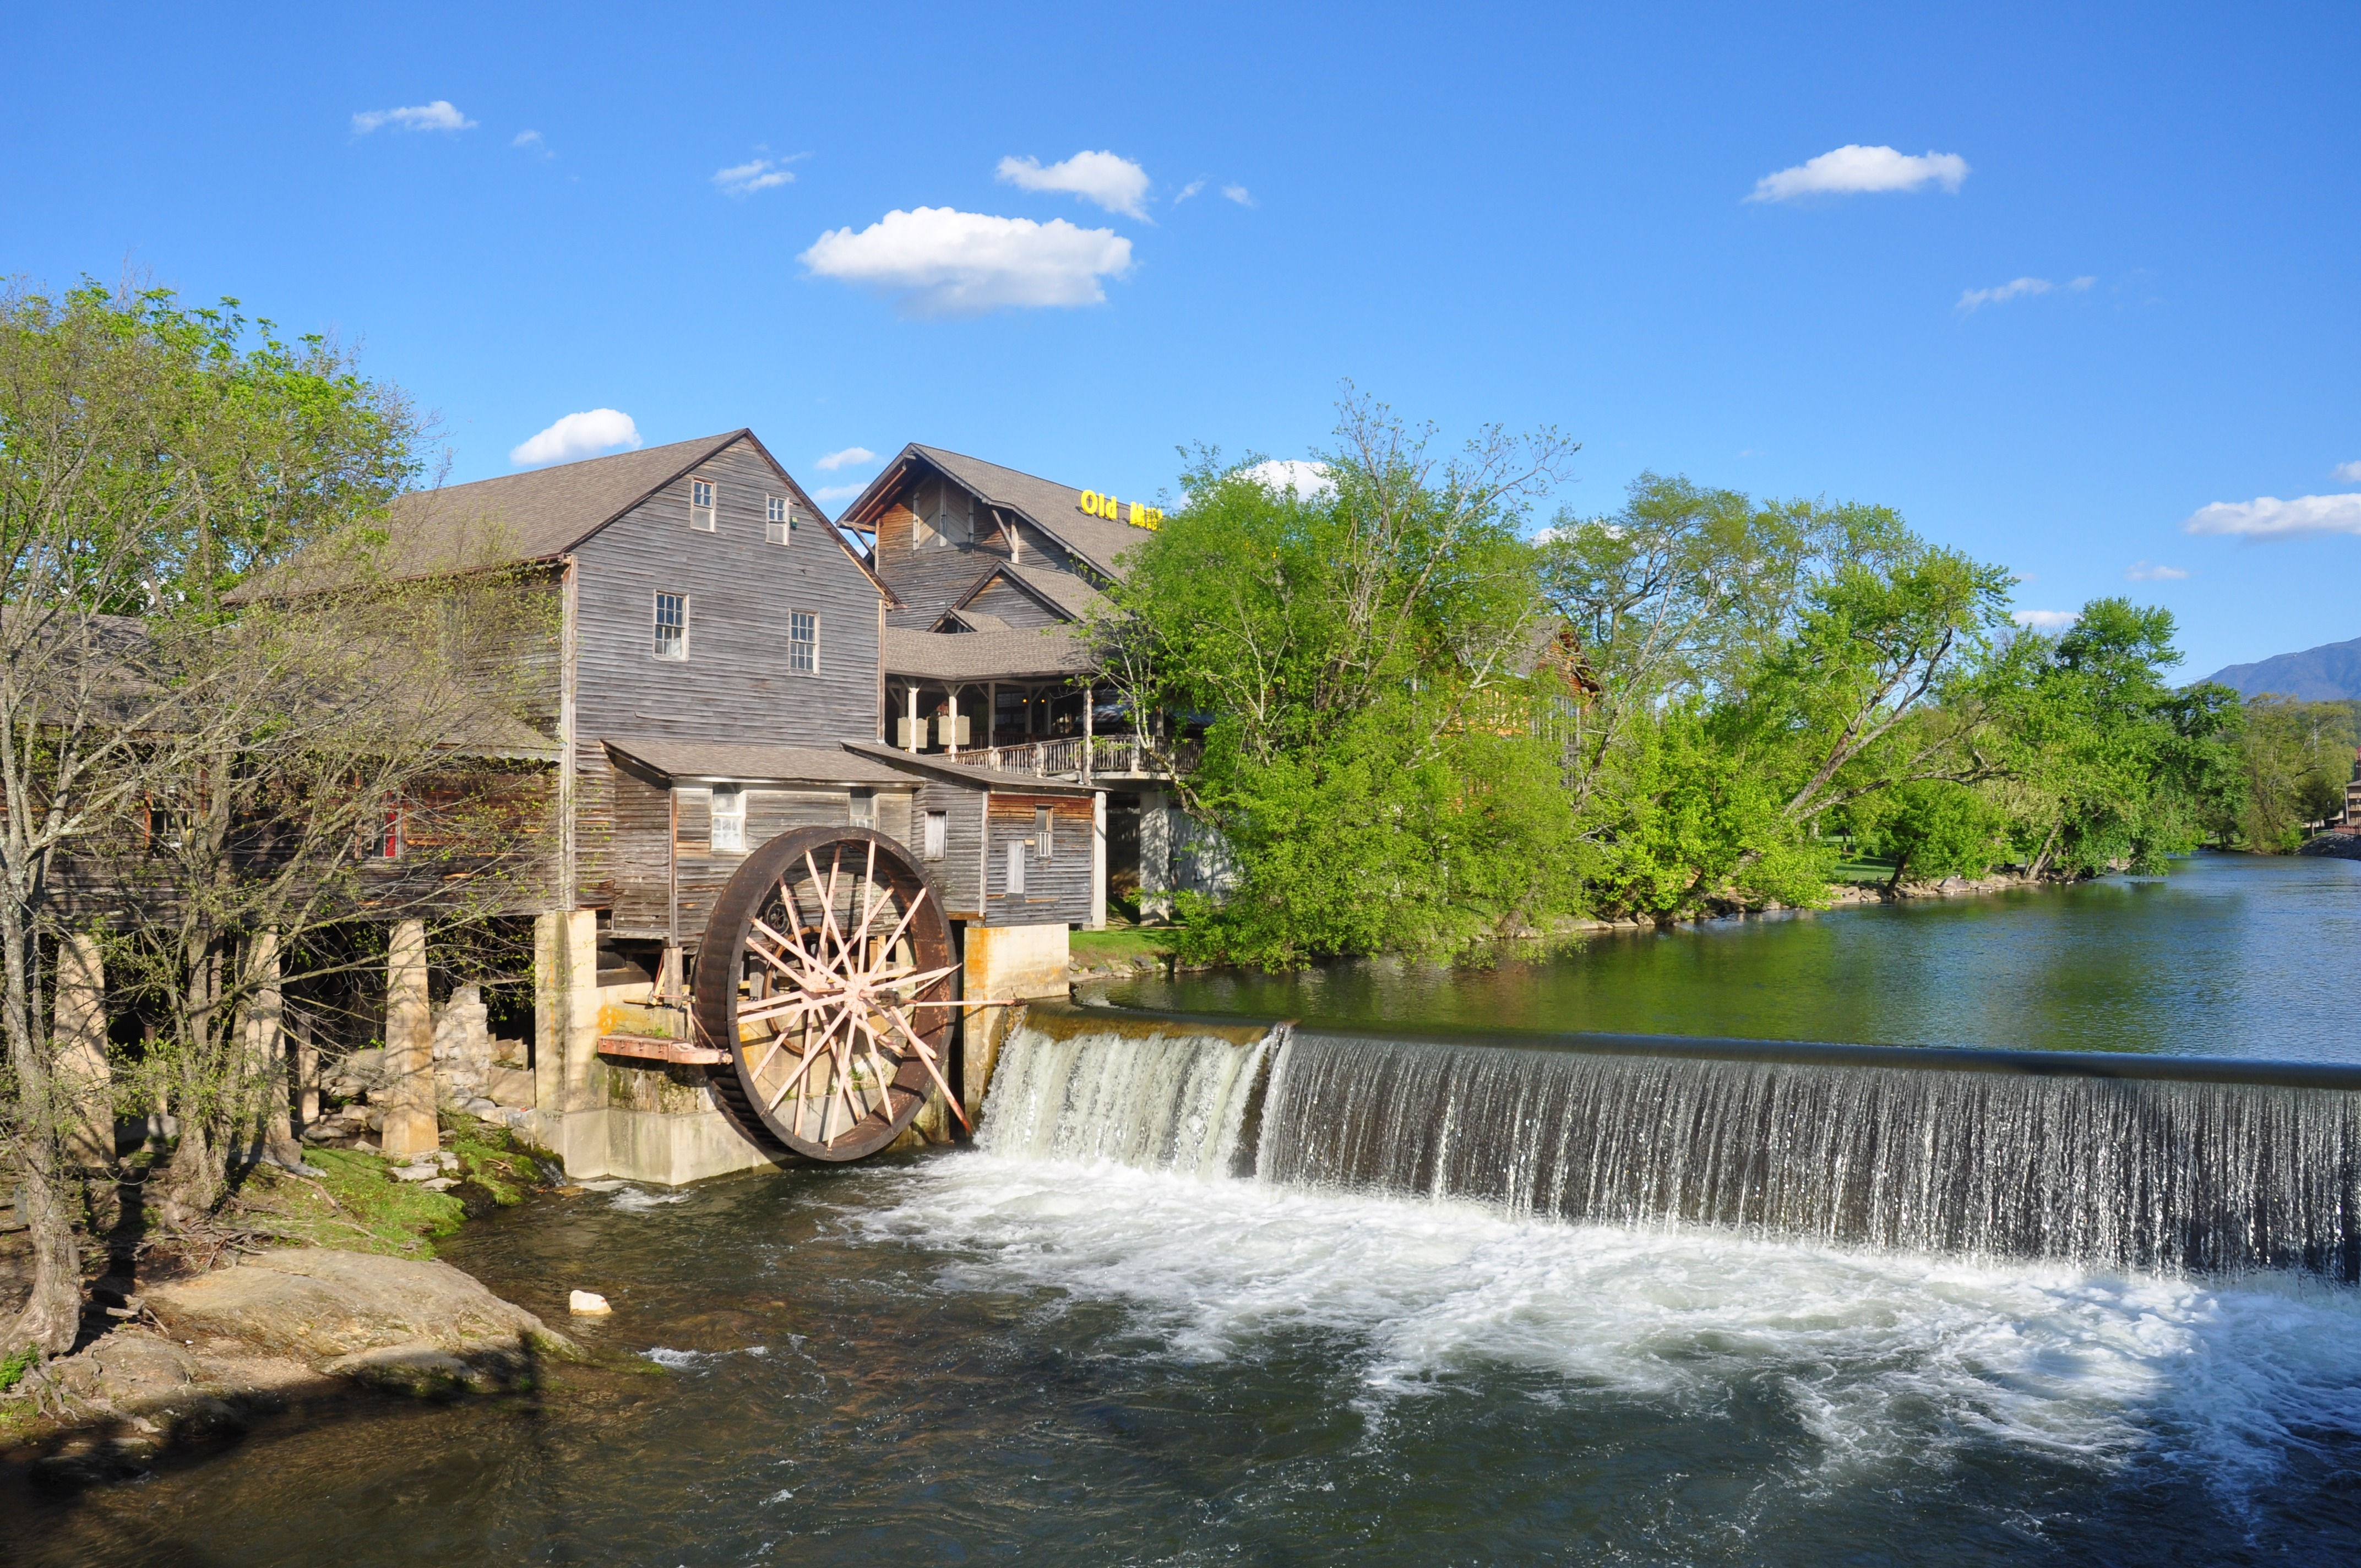 4 Family Attractions to Visit That are Within 10 Minutes of Our Pigeon Forge Hotel